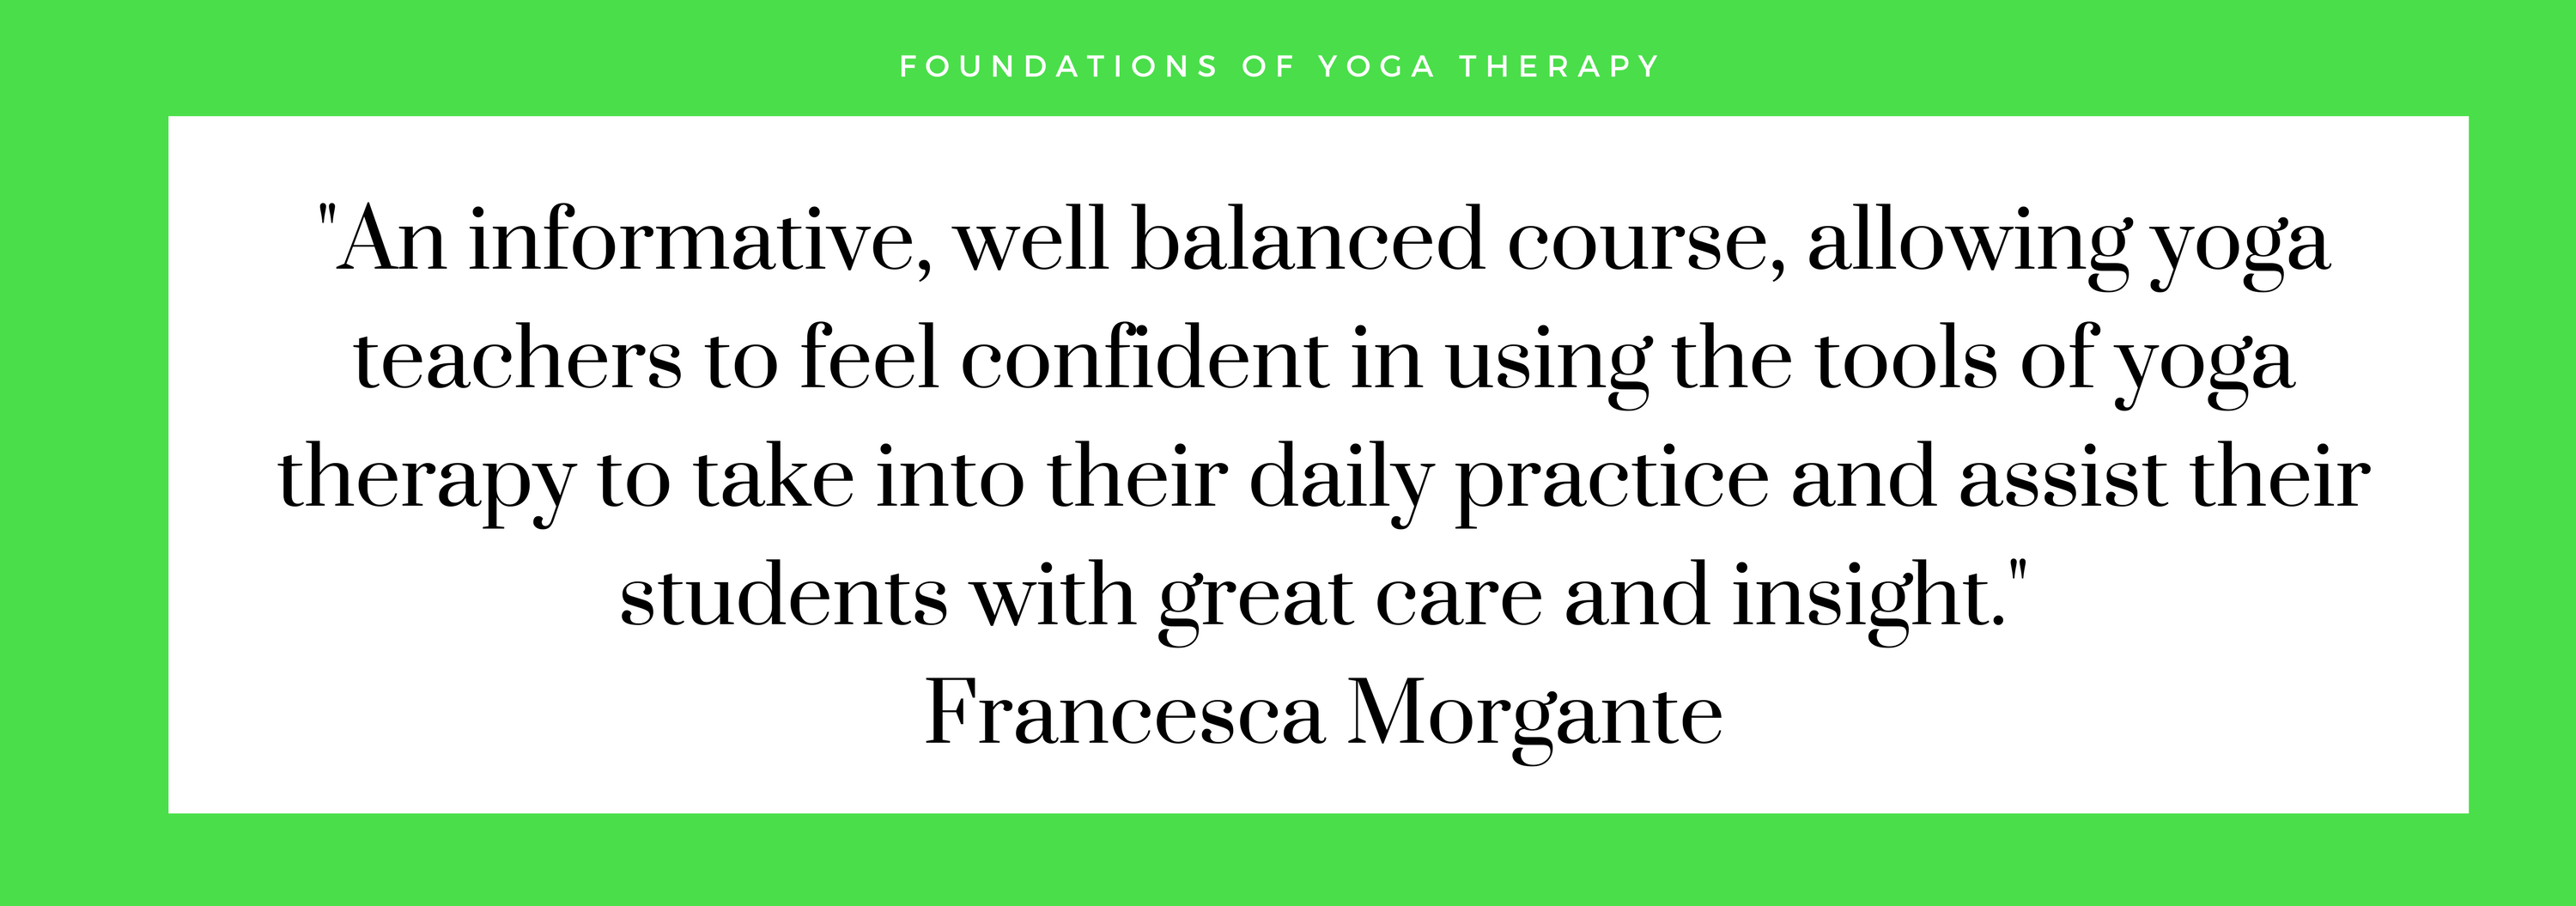 Foundations of Yoga Therapy Francesca quote-1.png